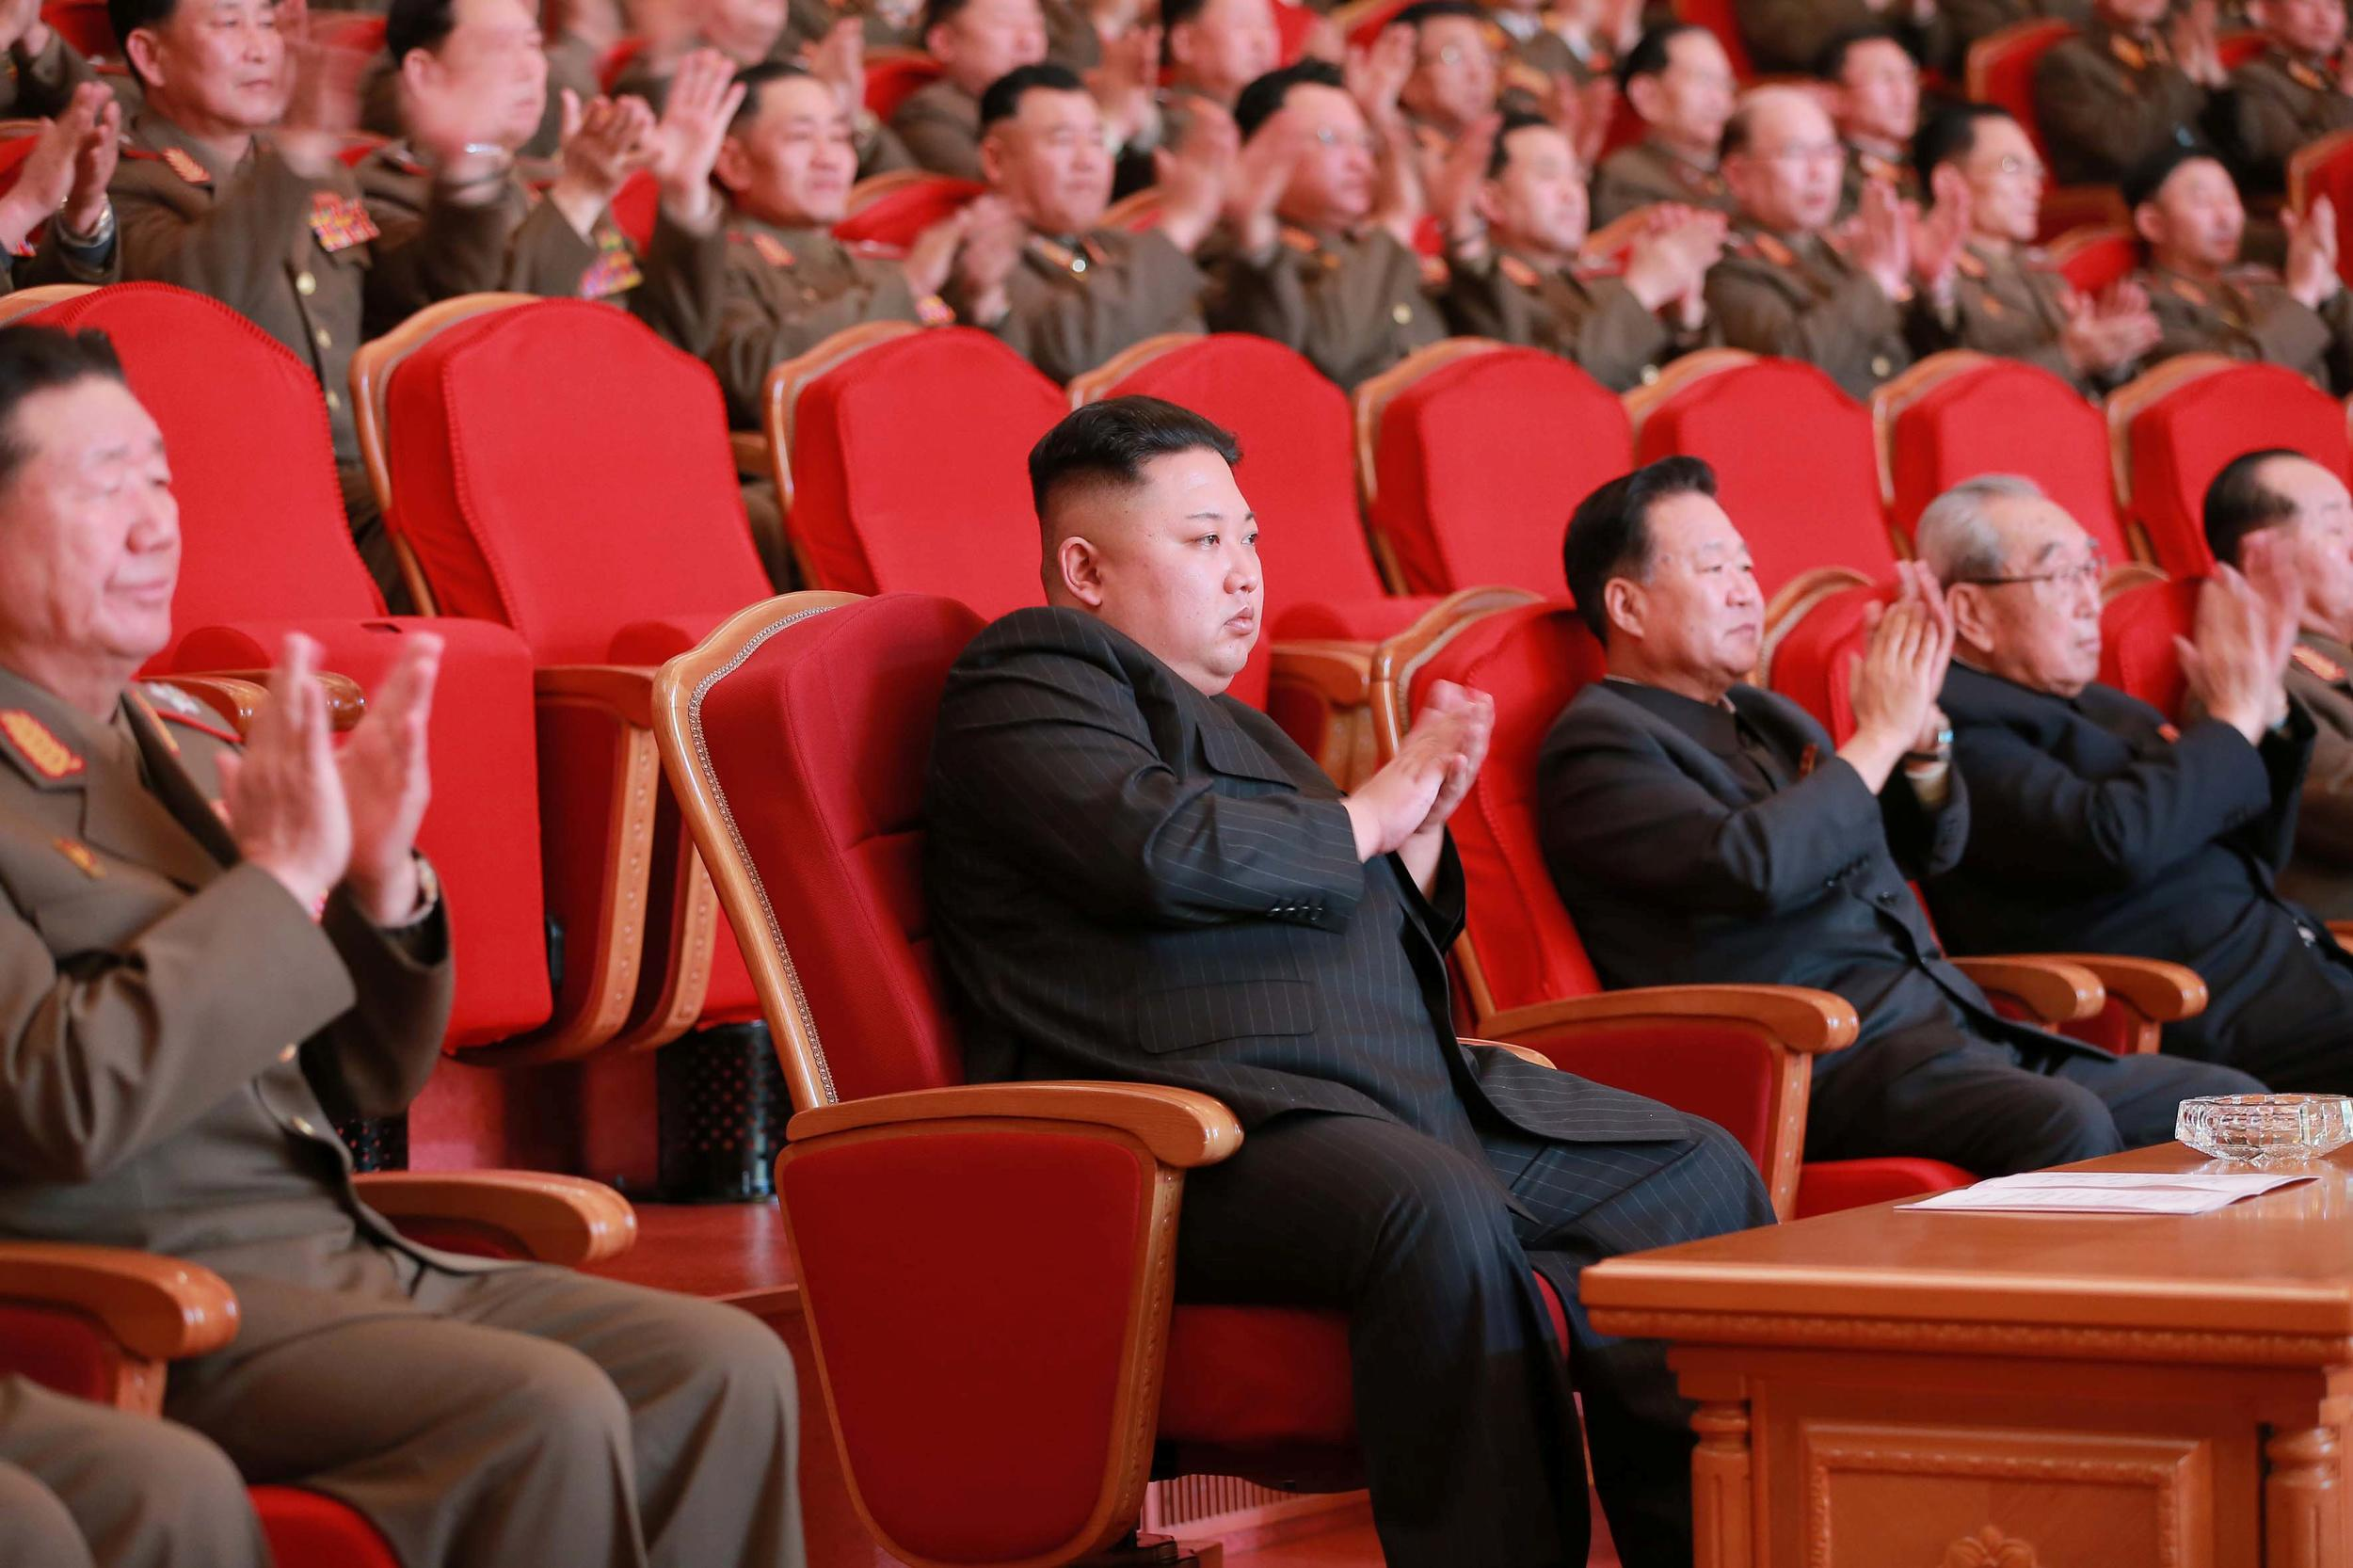 North Korean leader Kim Jong Un watches a performance given with splendor at the People's Theatre on Wednesday to mark the 70th anniversary of the founding of the State Merited Chorus in this photo released by North Korea's Korean Central News Agency (KCNA) in Pyongyang on February 23, 2017. KCNA/via REUTERS   ATTENTION EDITORS - THIS PICTURE WAS PROVIDED BY A THIRD PARTY. REUTERS IS UNABLE TO INDEPENDENTLY VERIFY THE AUTHENTICITY, CONTENT, LOCATION OR DATE OF THIS IMAGE. FOR EDITORIAL USE ONLY. NOT FOR SALE FOR MARKETING OR ADVERTISING CAMPAIGNS. NO THIRD PARTY SALES. NOT FOR USE BY REUTERS THIRD PARTY DISTRIBUTORS. SOUTH KOREA OUT. NO COMMERCIAL OR EDITORIAL SALES IN SOUTH KOREA.